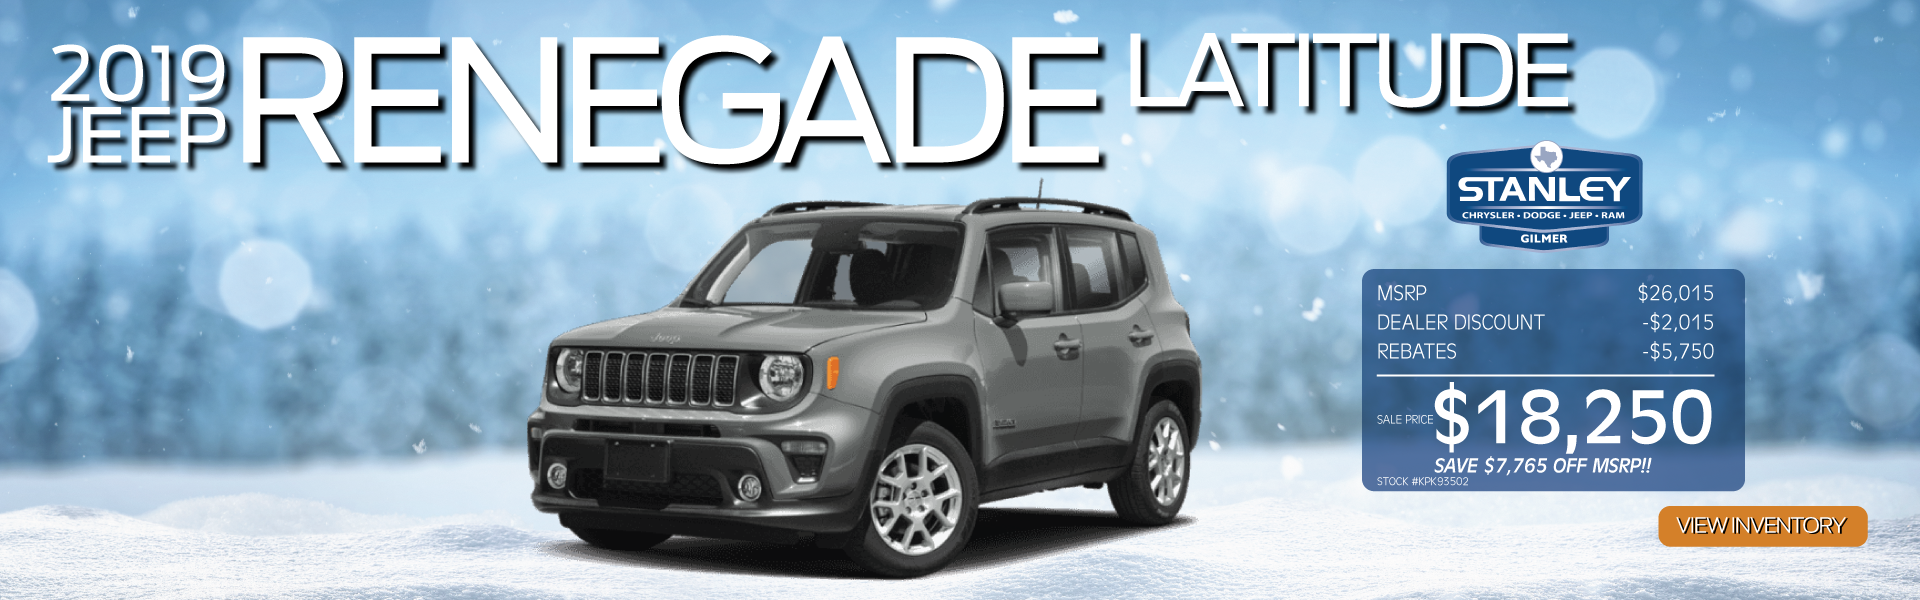 Renegade Latitude